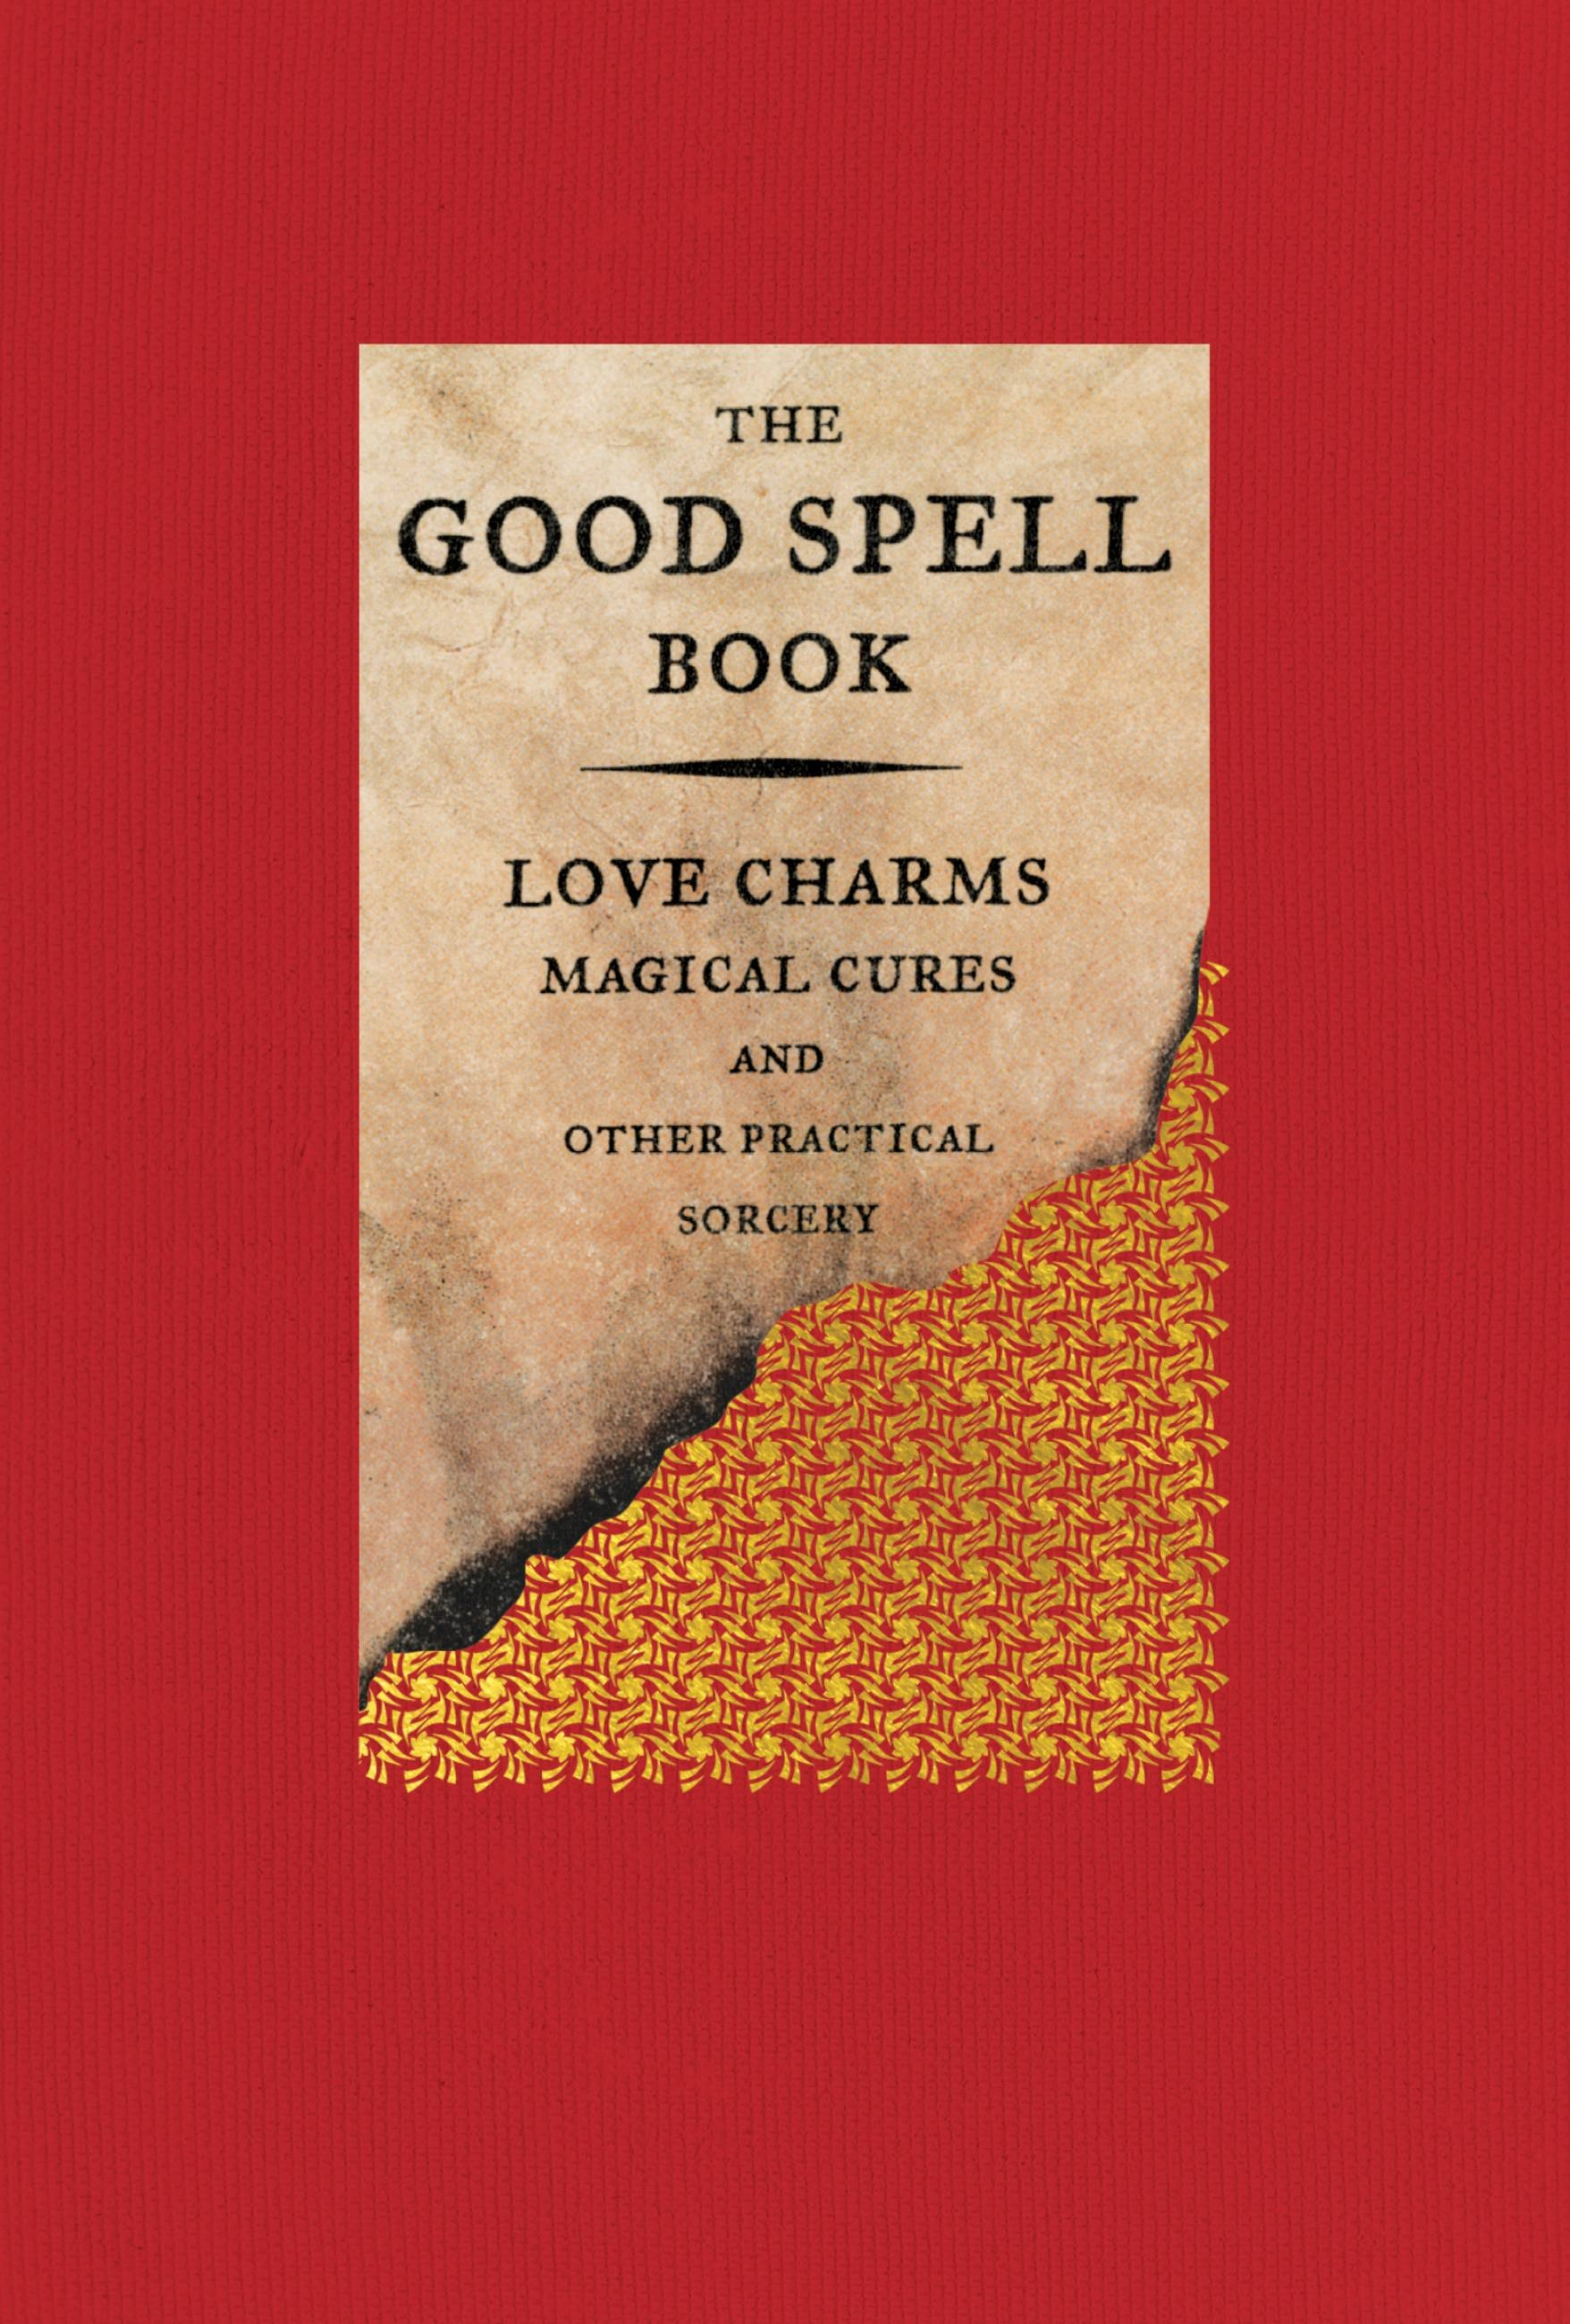 Good Spell Book, The